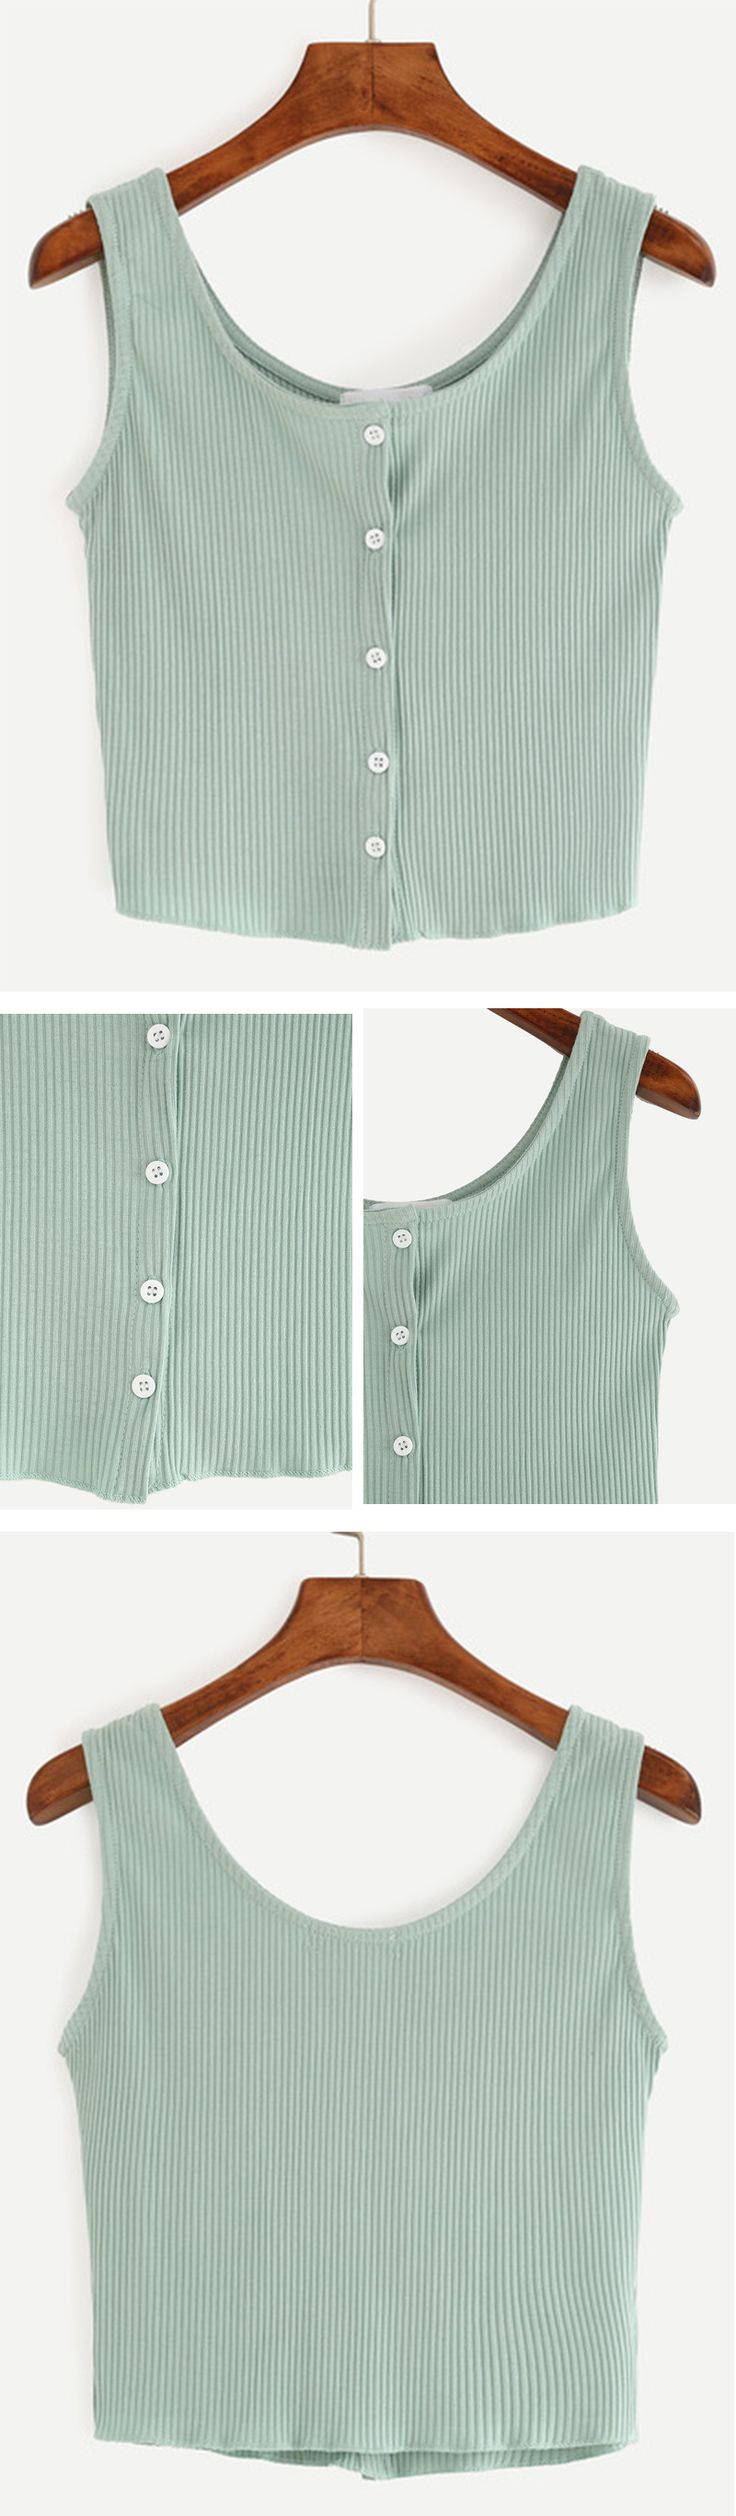 ♔ pinterest: brinnxo ♡ Buttoned Front Ribbed Knit Crop Tank Top - Green